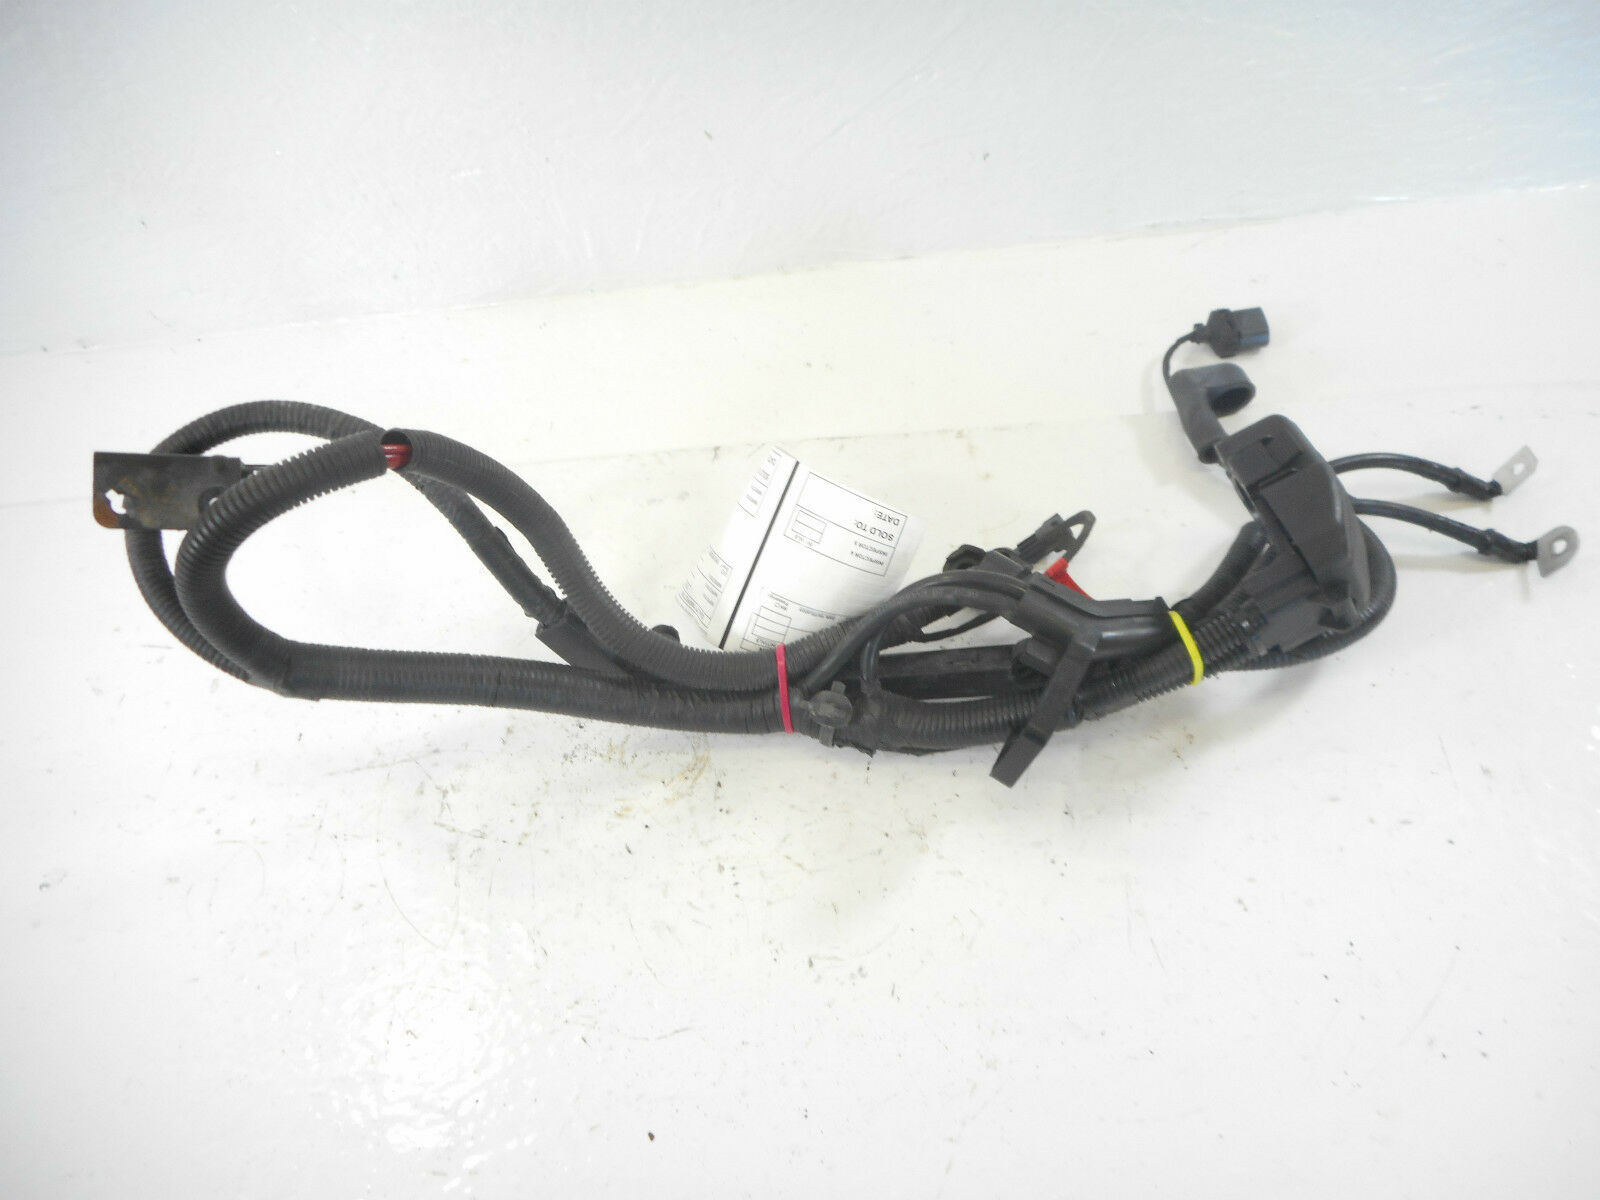 s l1600 2012 hyundai elantra hybrid 2 0l battery positive cable & wiring 2012 hyundai elantra wiring diagram at mifinder.co